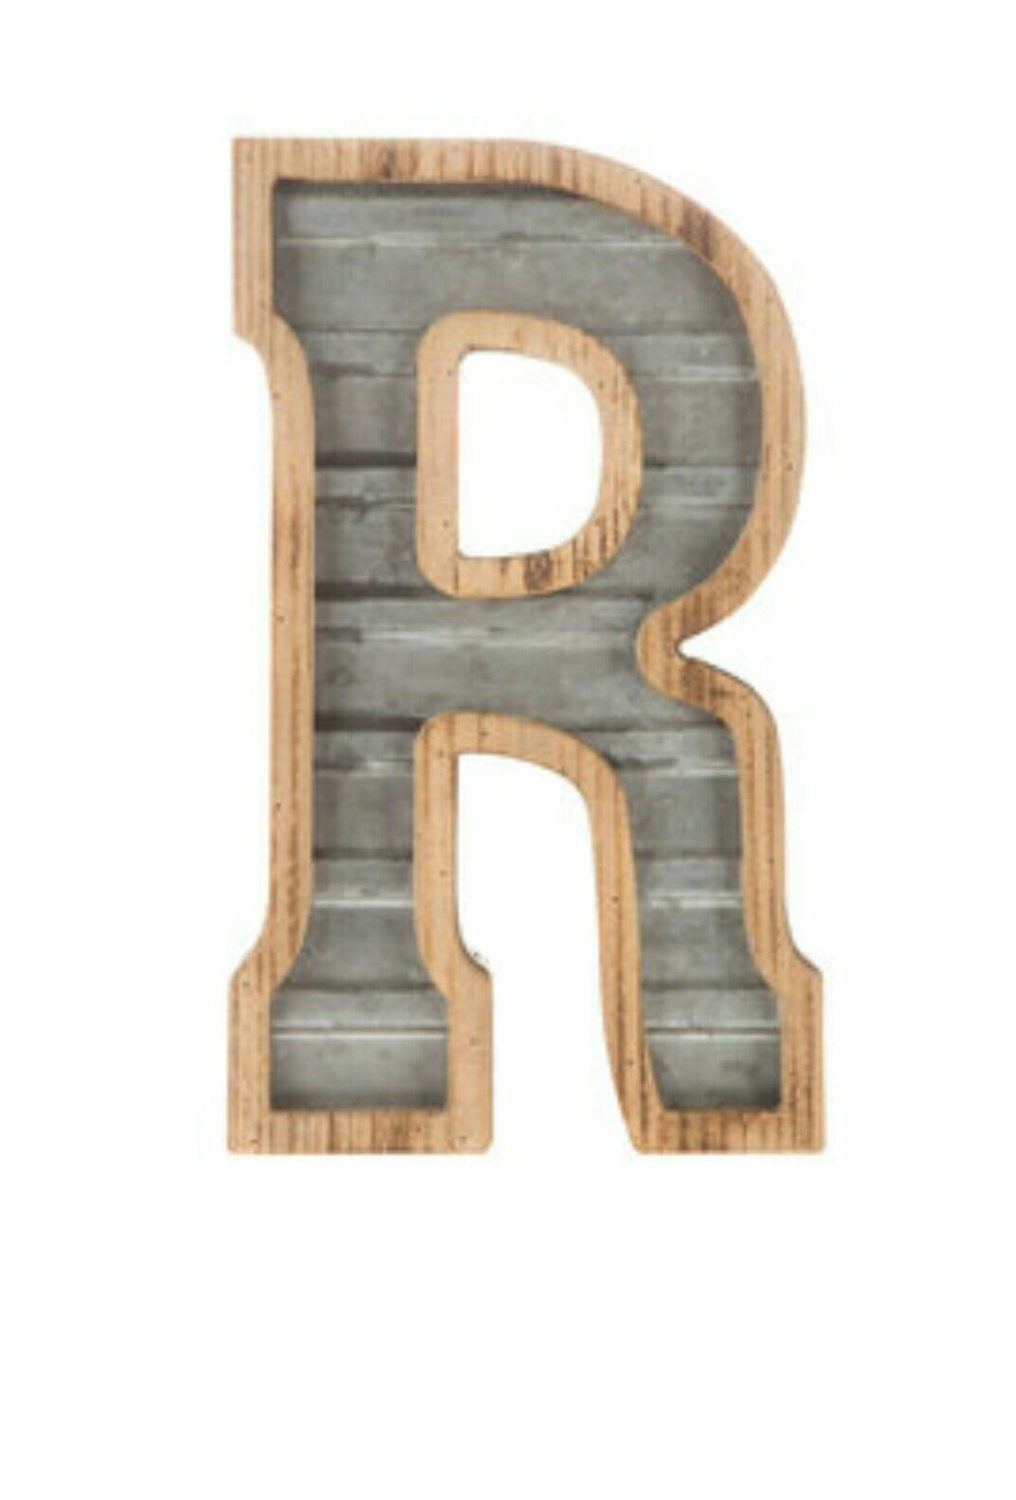 Galvanized Letter H On Sale 1 Galvanized Metal Letters R With Wood Outline Large